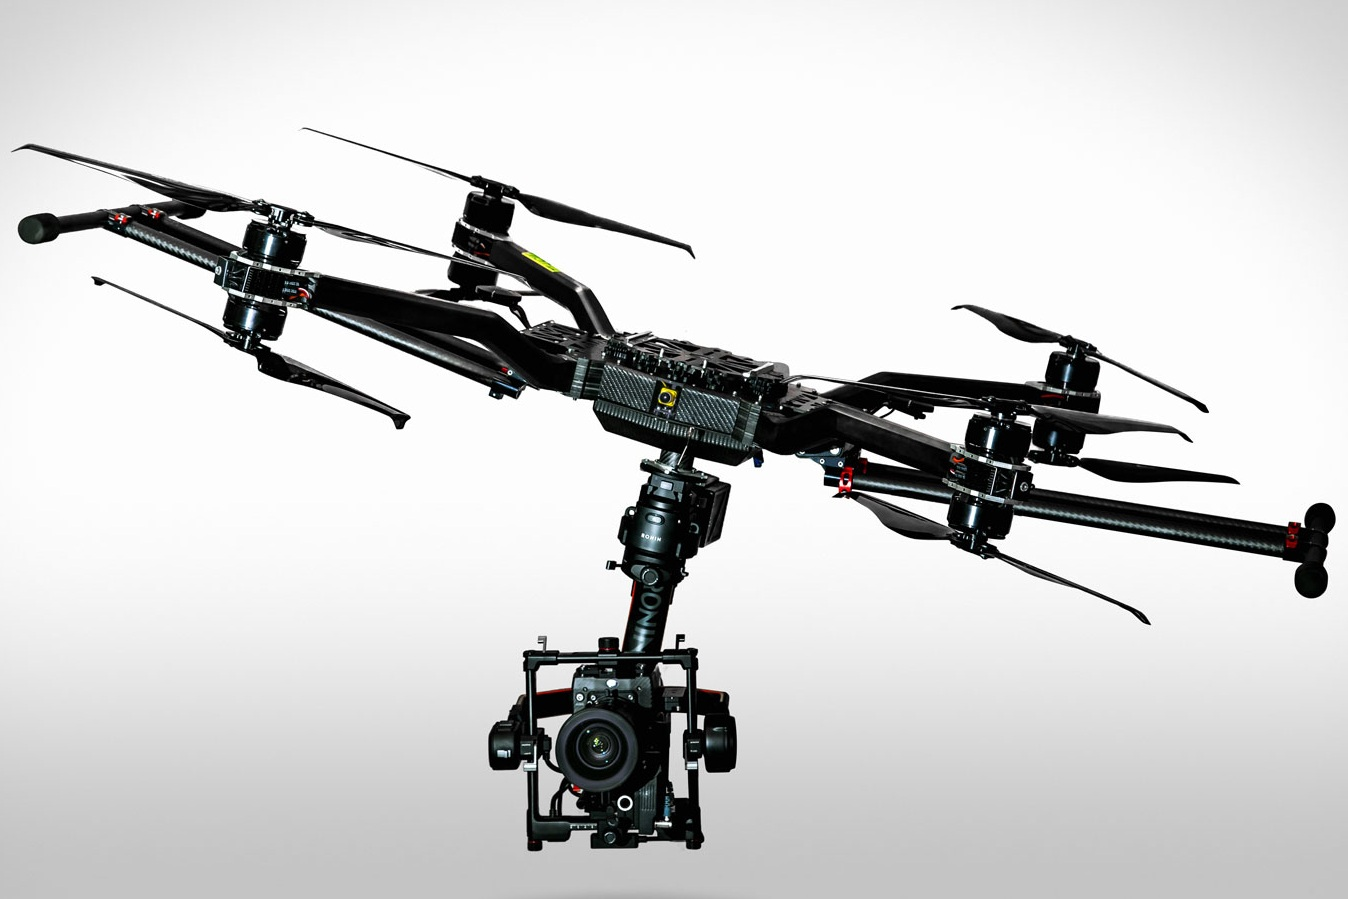 ultra x8 - The equipment you always wanted to fly can now be lifted.